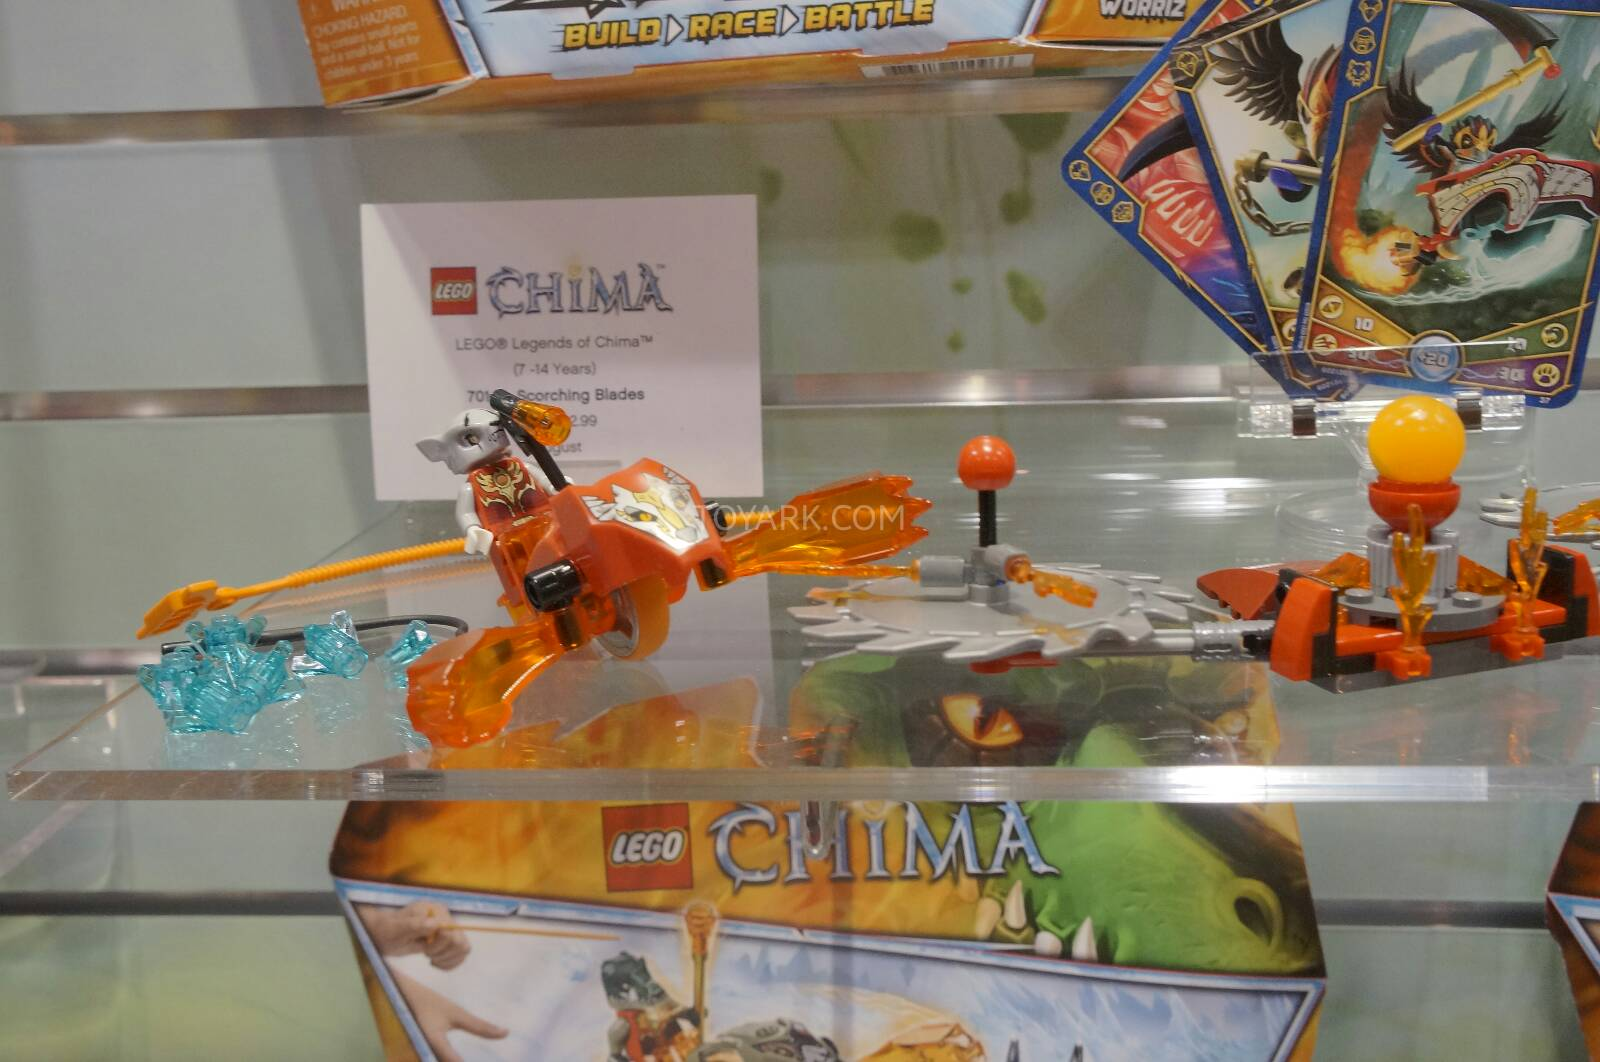 Chima Lego Sets 2014 Lego Legends of Chima Sets at